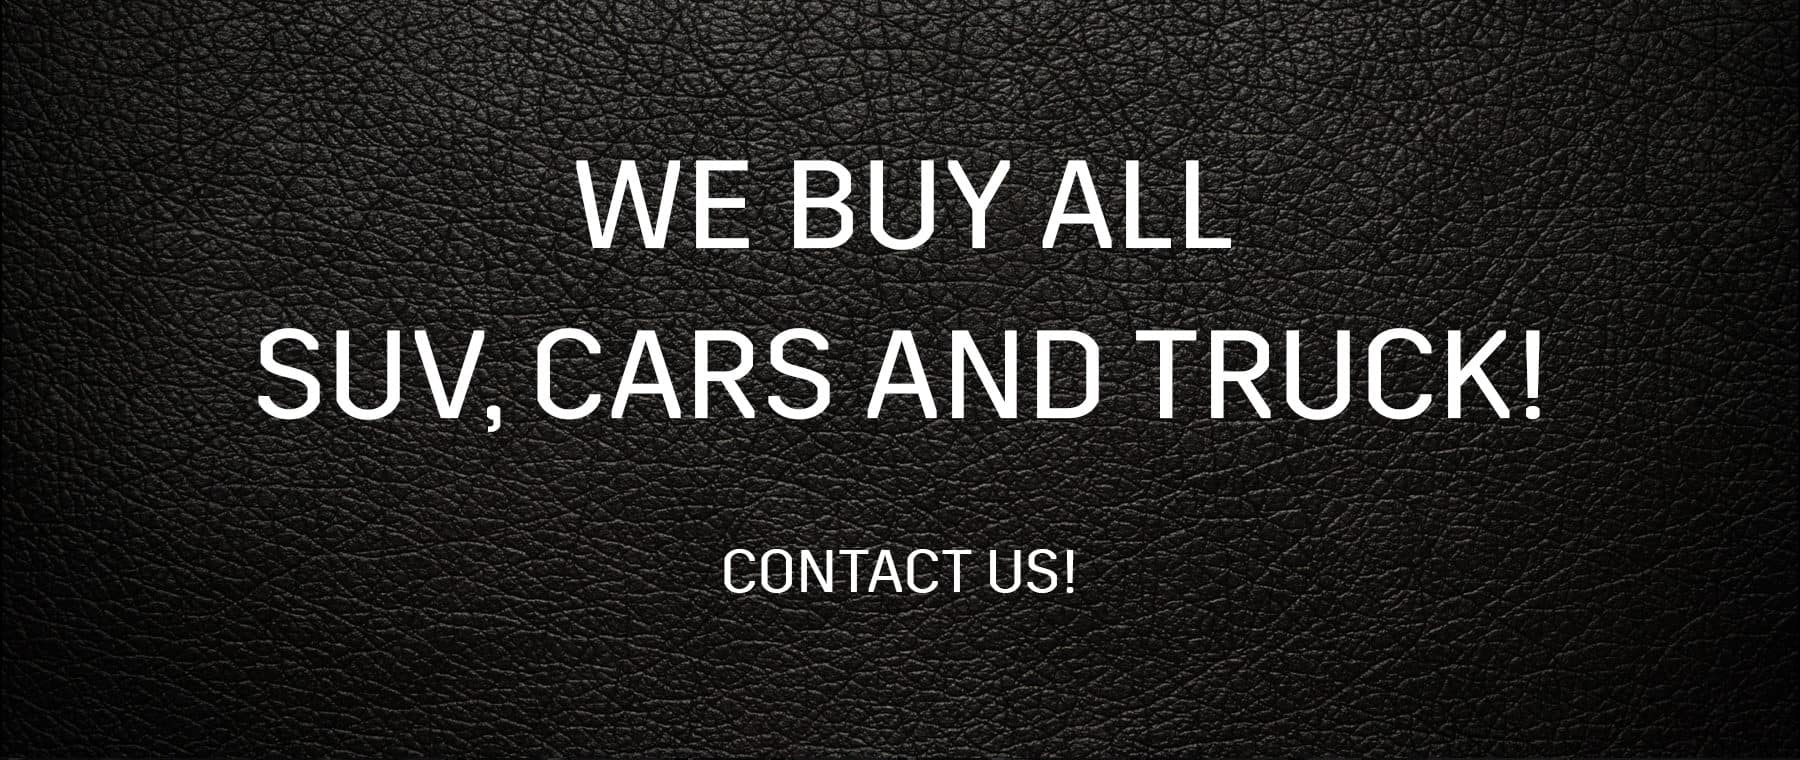 We Buy SUV Cars and Truck